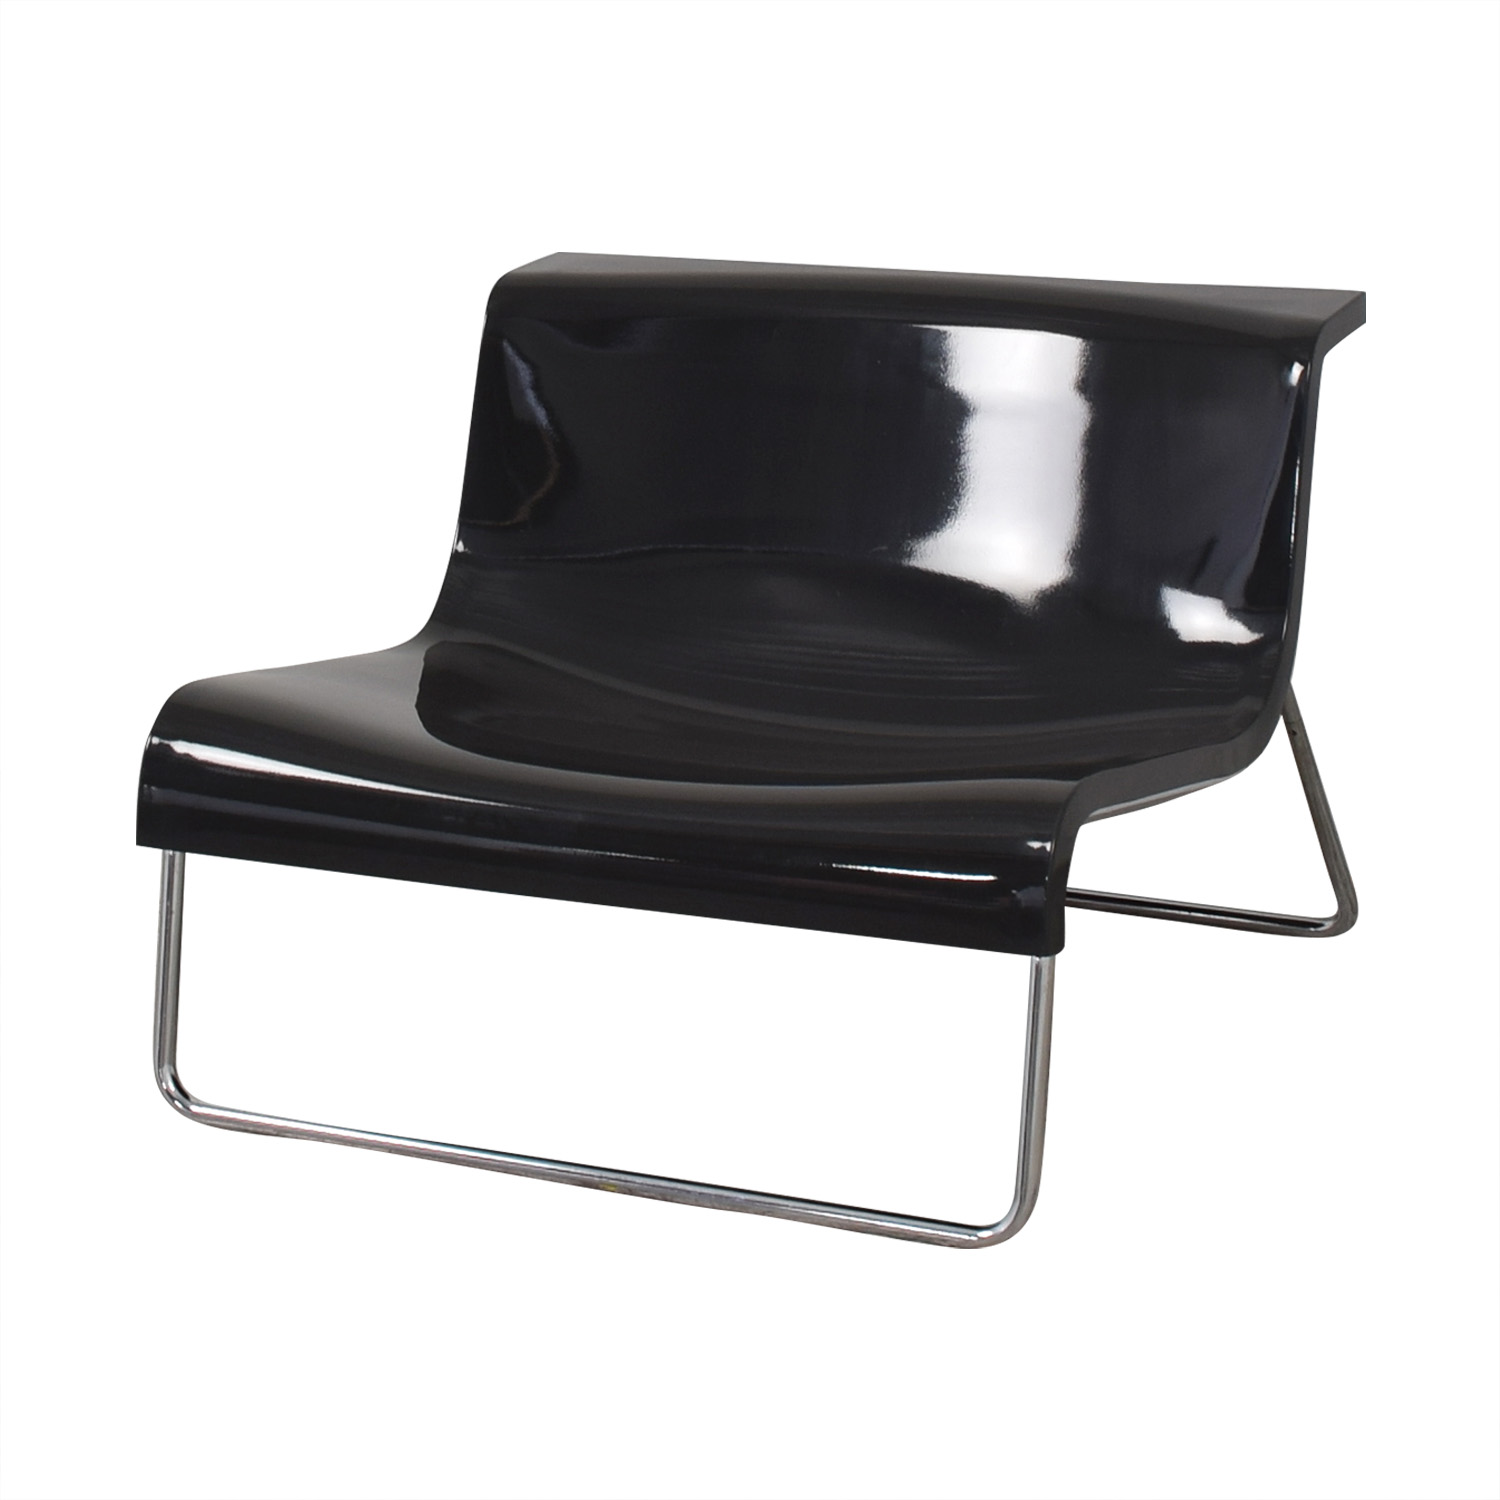 Kartell Kartell Form Lounge Chair by Piero Lissoni second hand